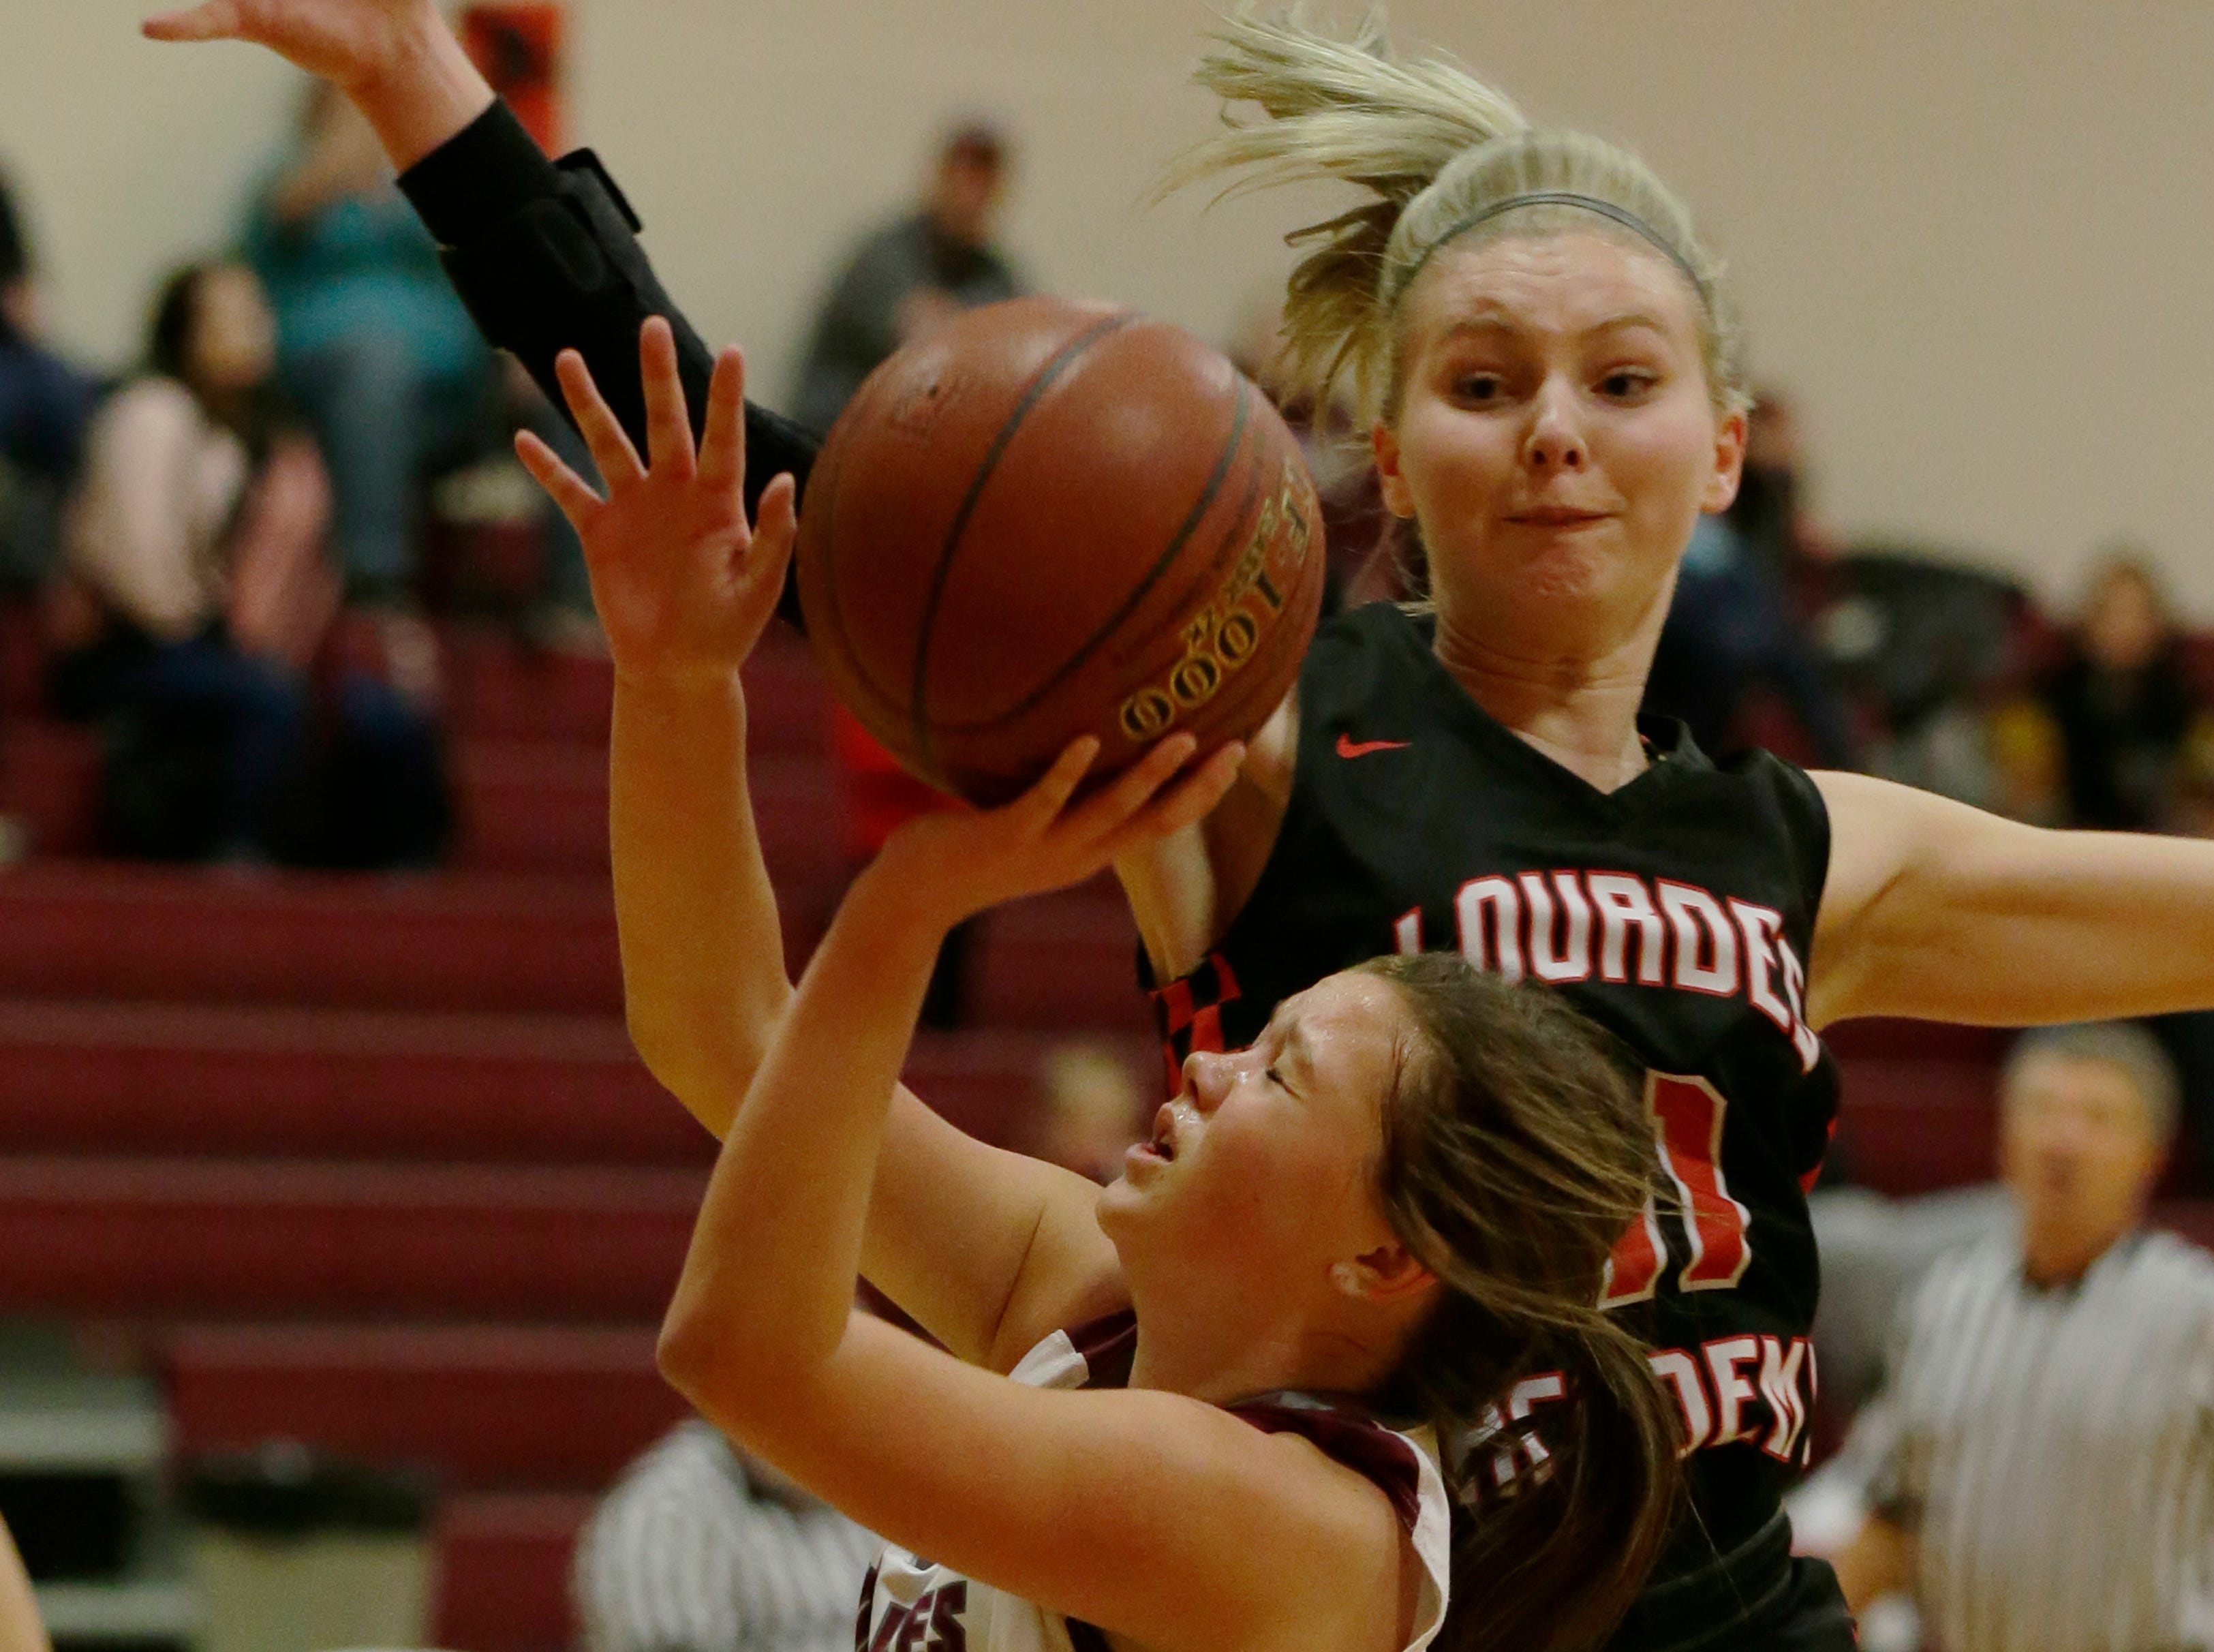 Lourdes Academy's Alexis Rolph gets ready to block Winneconne's Claire Gentry shot.  Winneconne Wolves played Lourdes Academy Knights, Tuesday, Dec. 11, 2018.  Winneconne won 56 - 44.